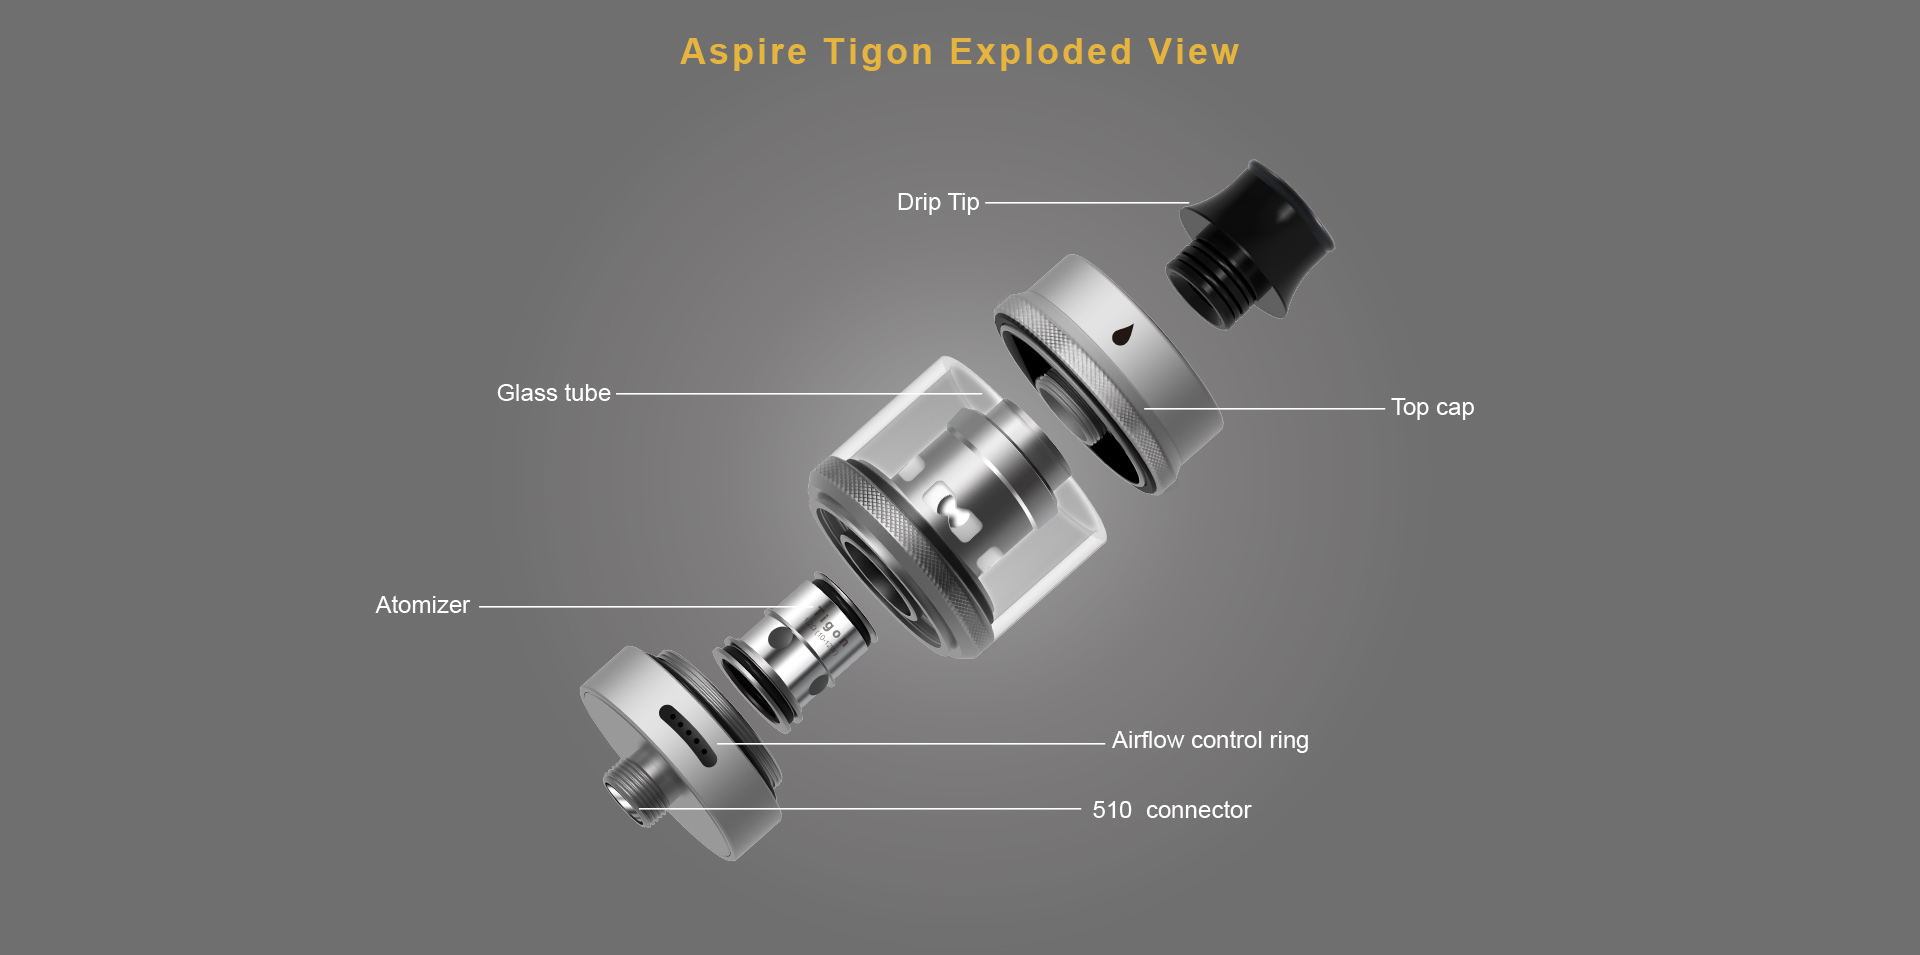 Aspire Tigon Tank Features 3